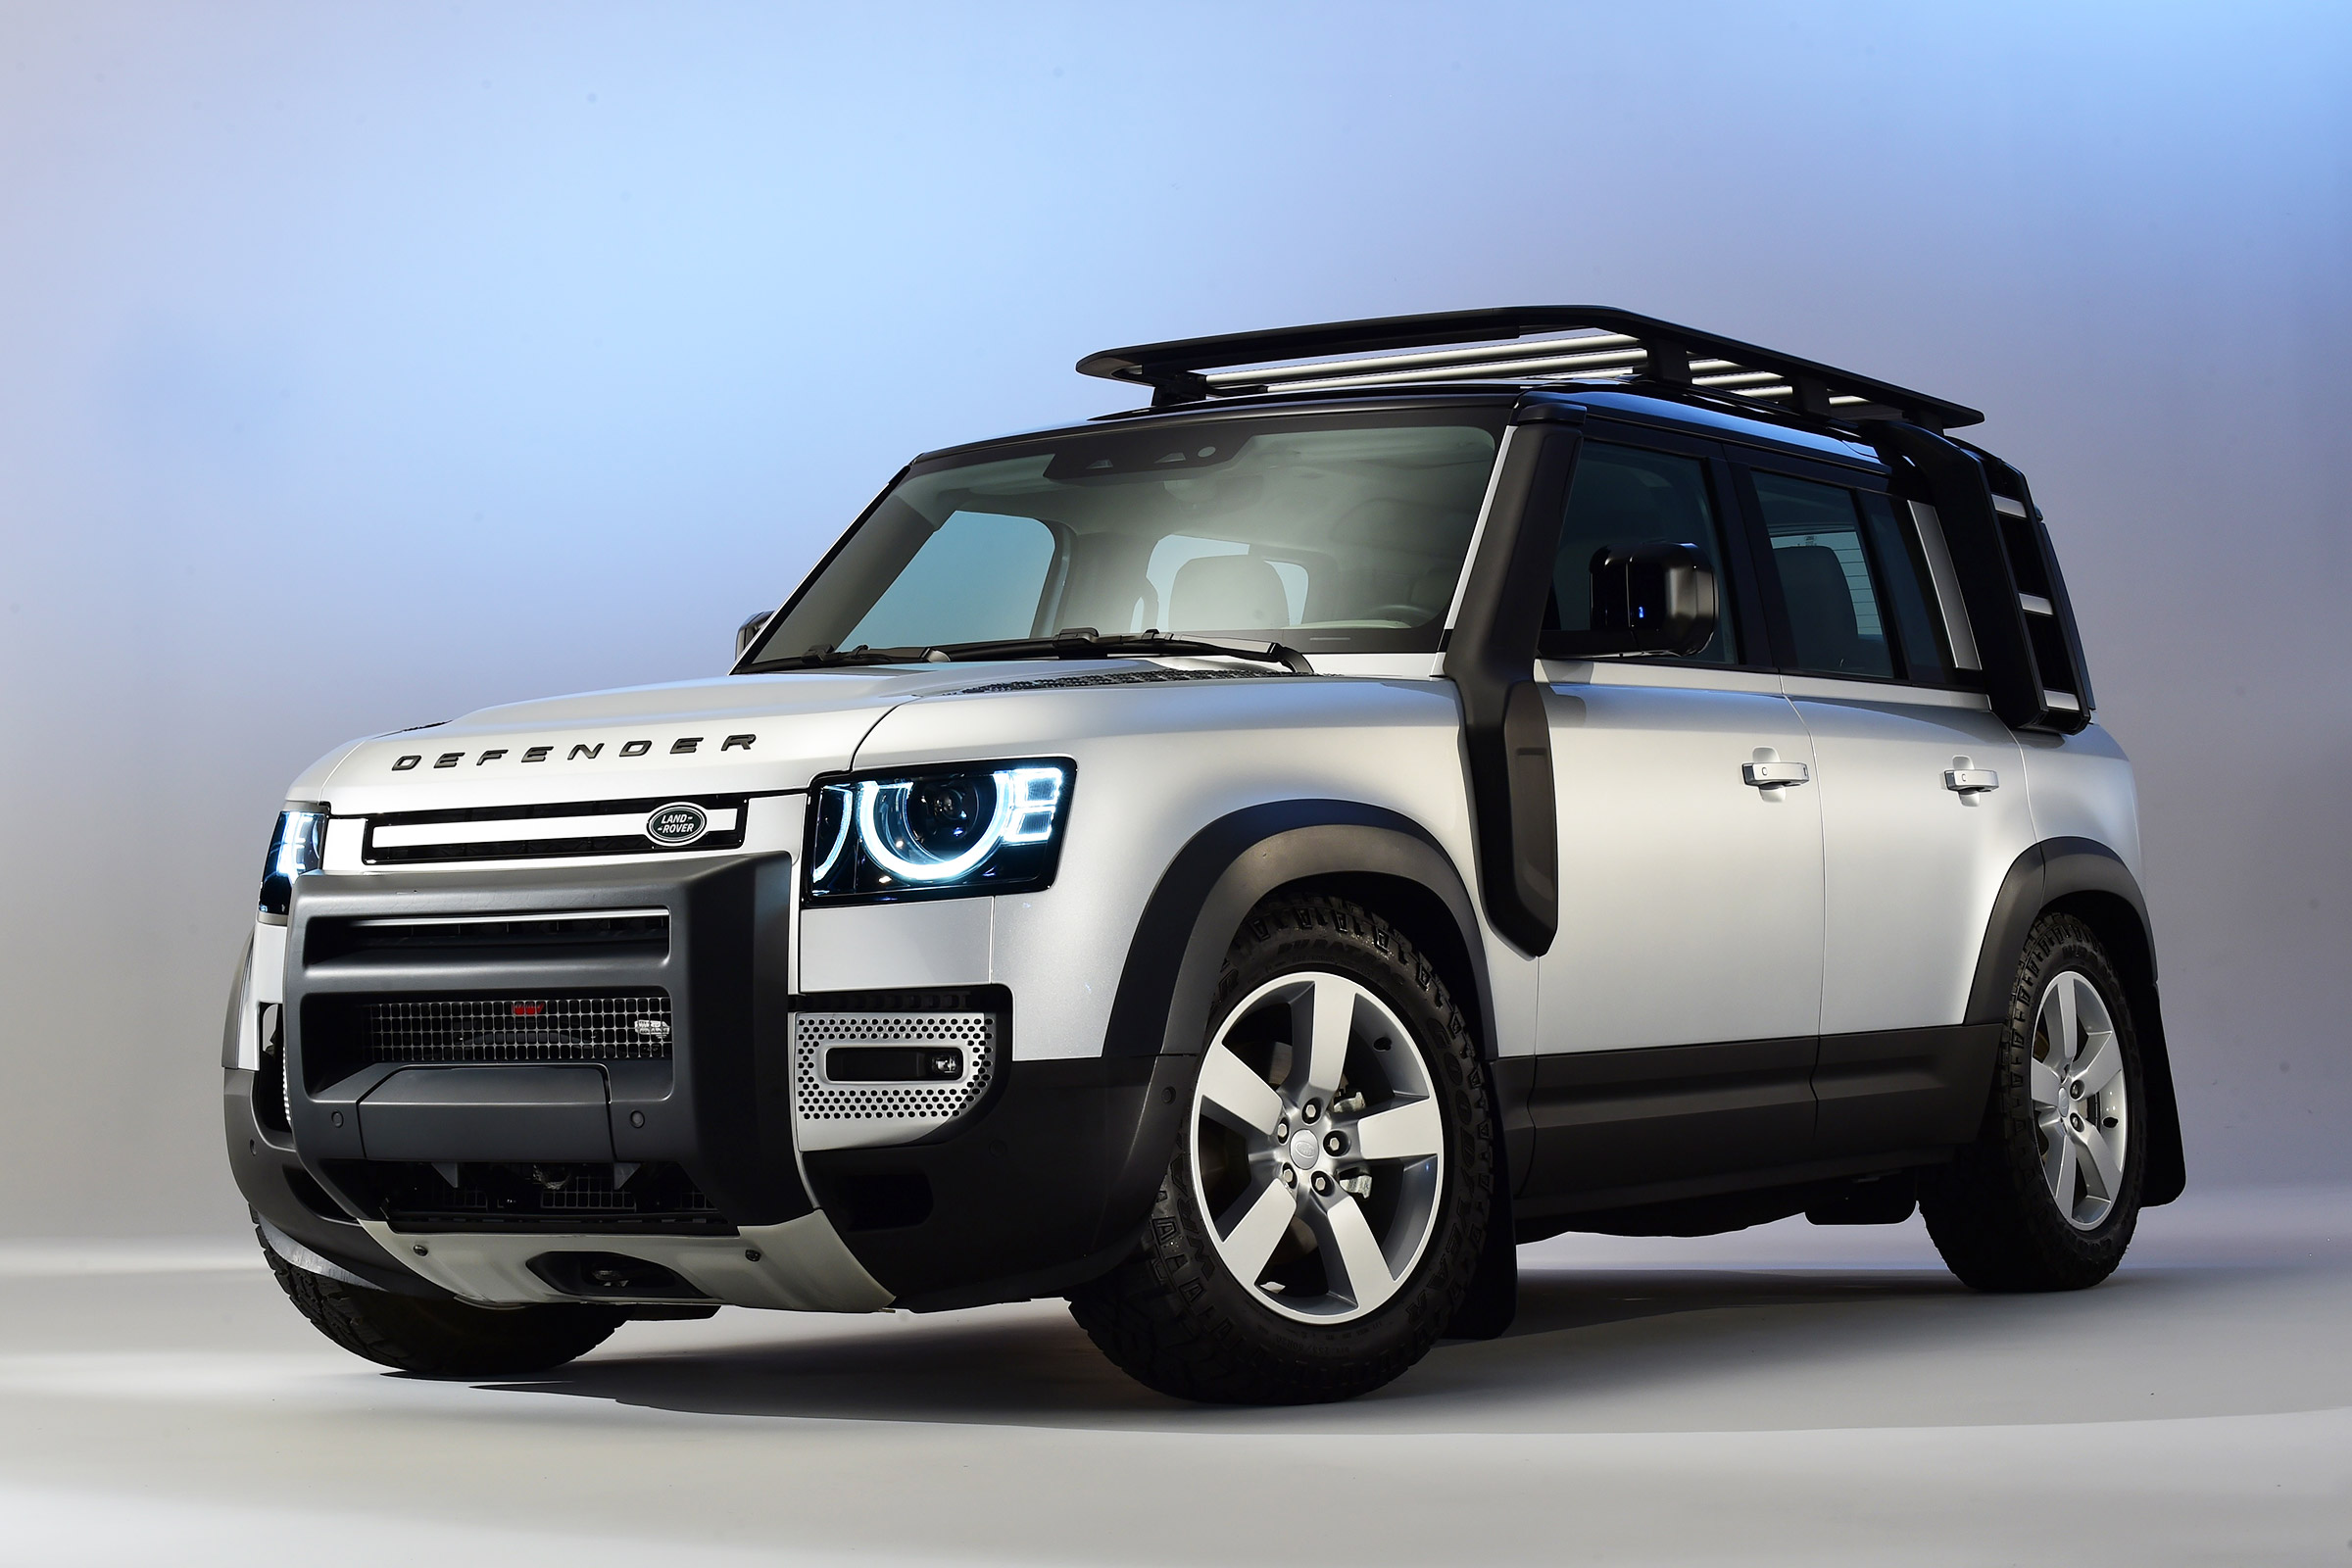 new 2020 land rover defender  full details  specs and pics